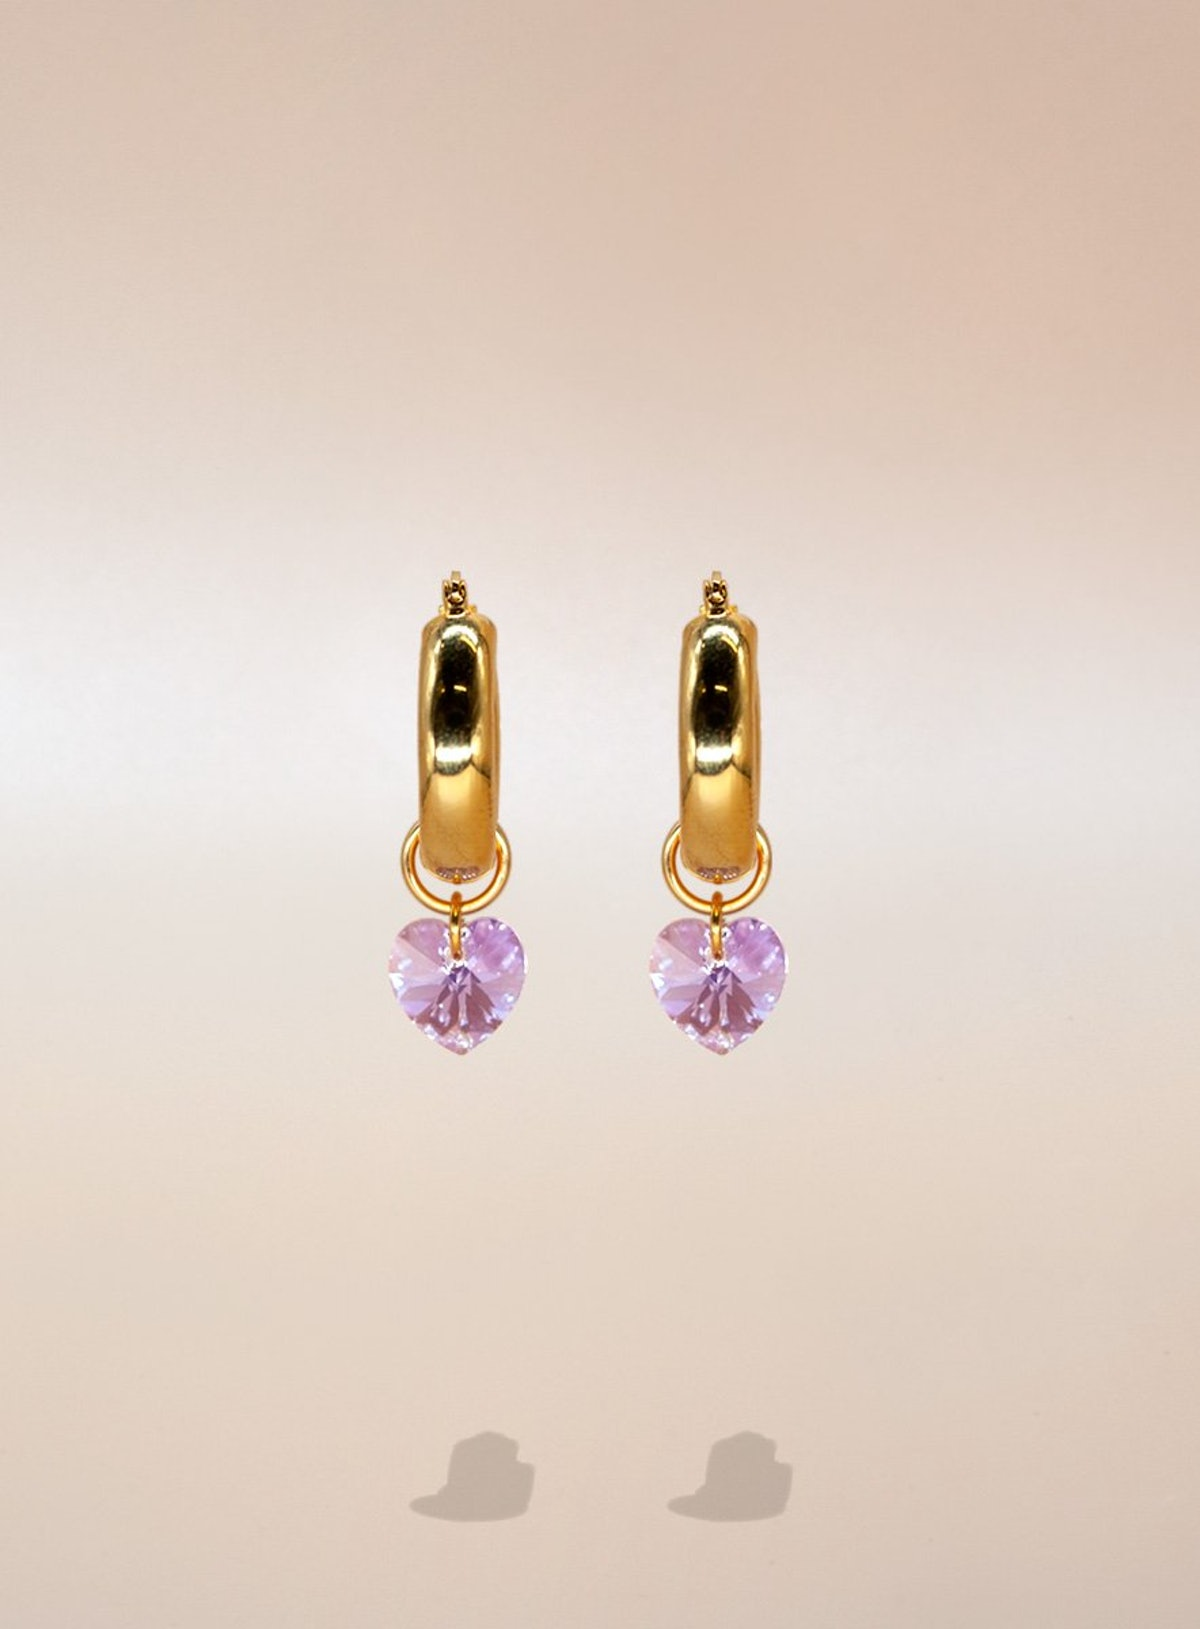 Lonely Hearts Club gold vermeil earrings from Annele.